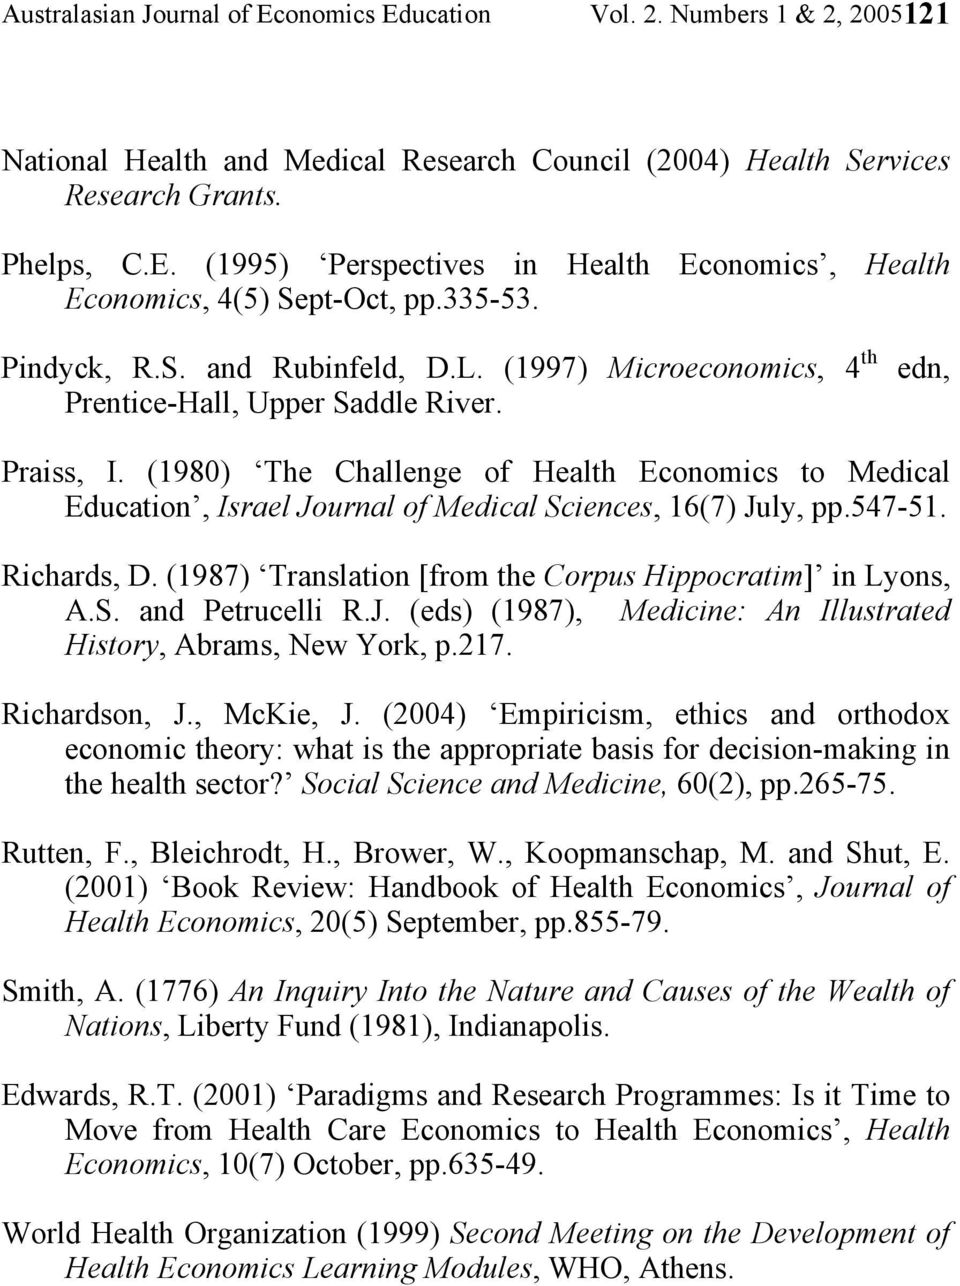 (1980) The Challenge of Health Economics to Medical Education, Israel Journal of Medical Sciences, 16(7) July, pp.547-51. Richards, D. (1987) Translation [from the Corpus Hippocratim] in Lyons, A.S. and Petrucelli R.